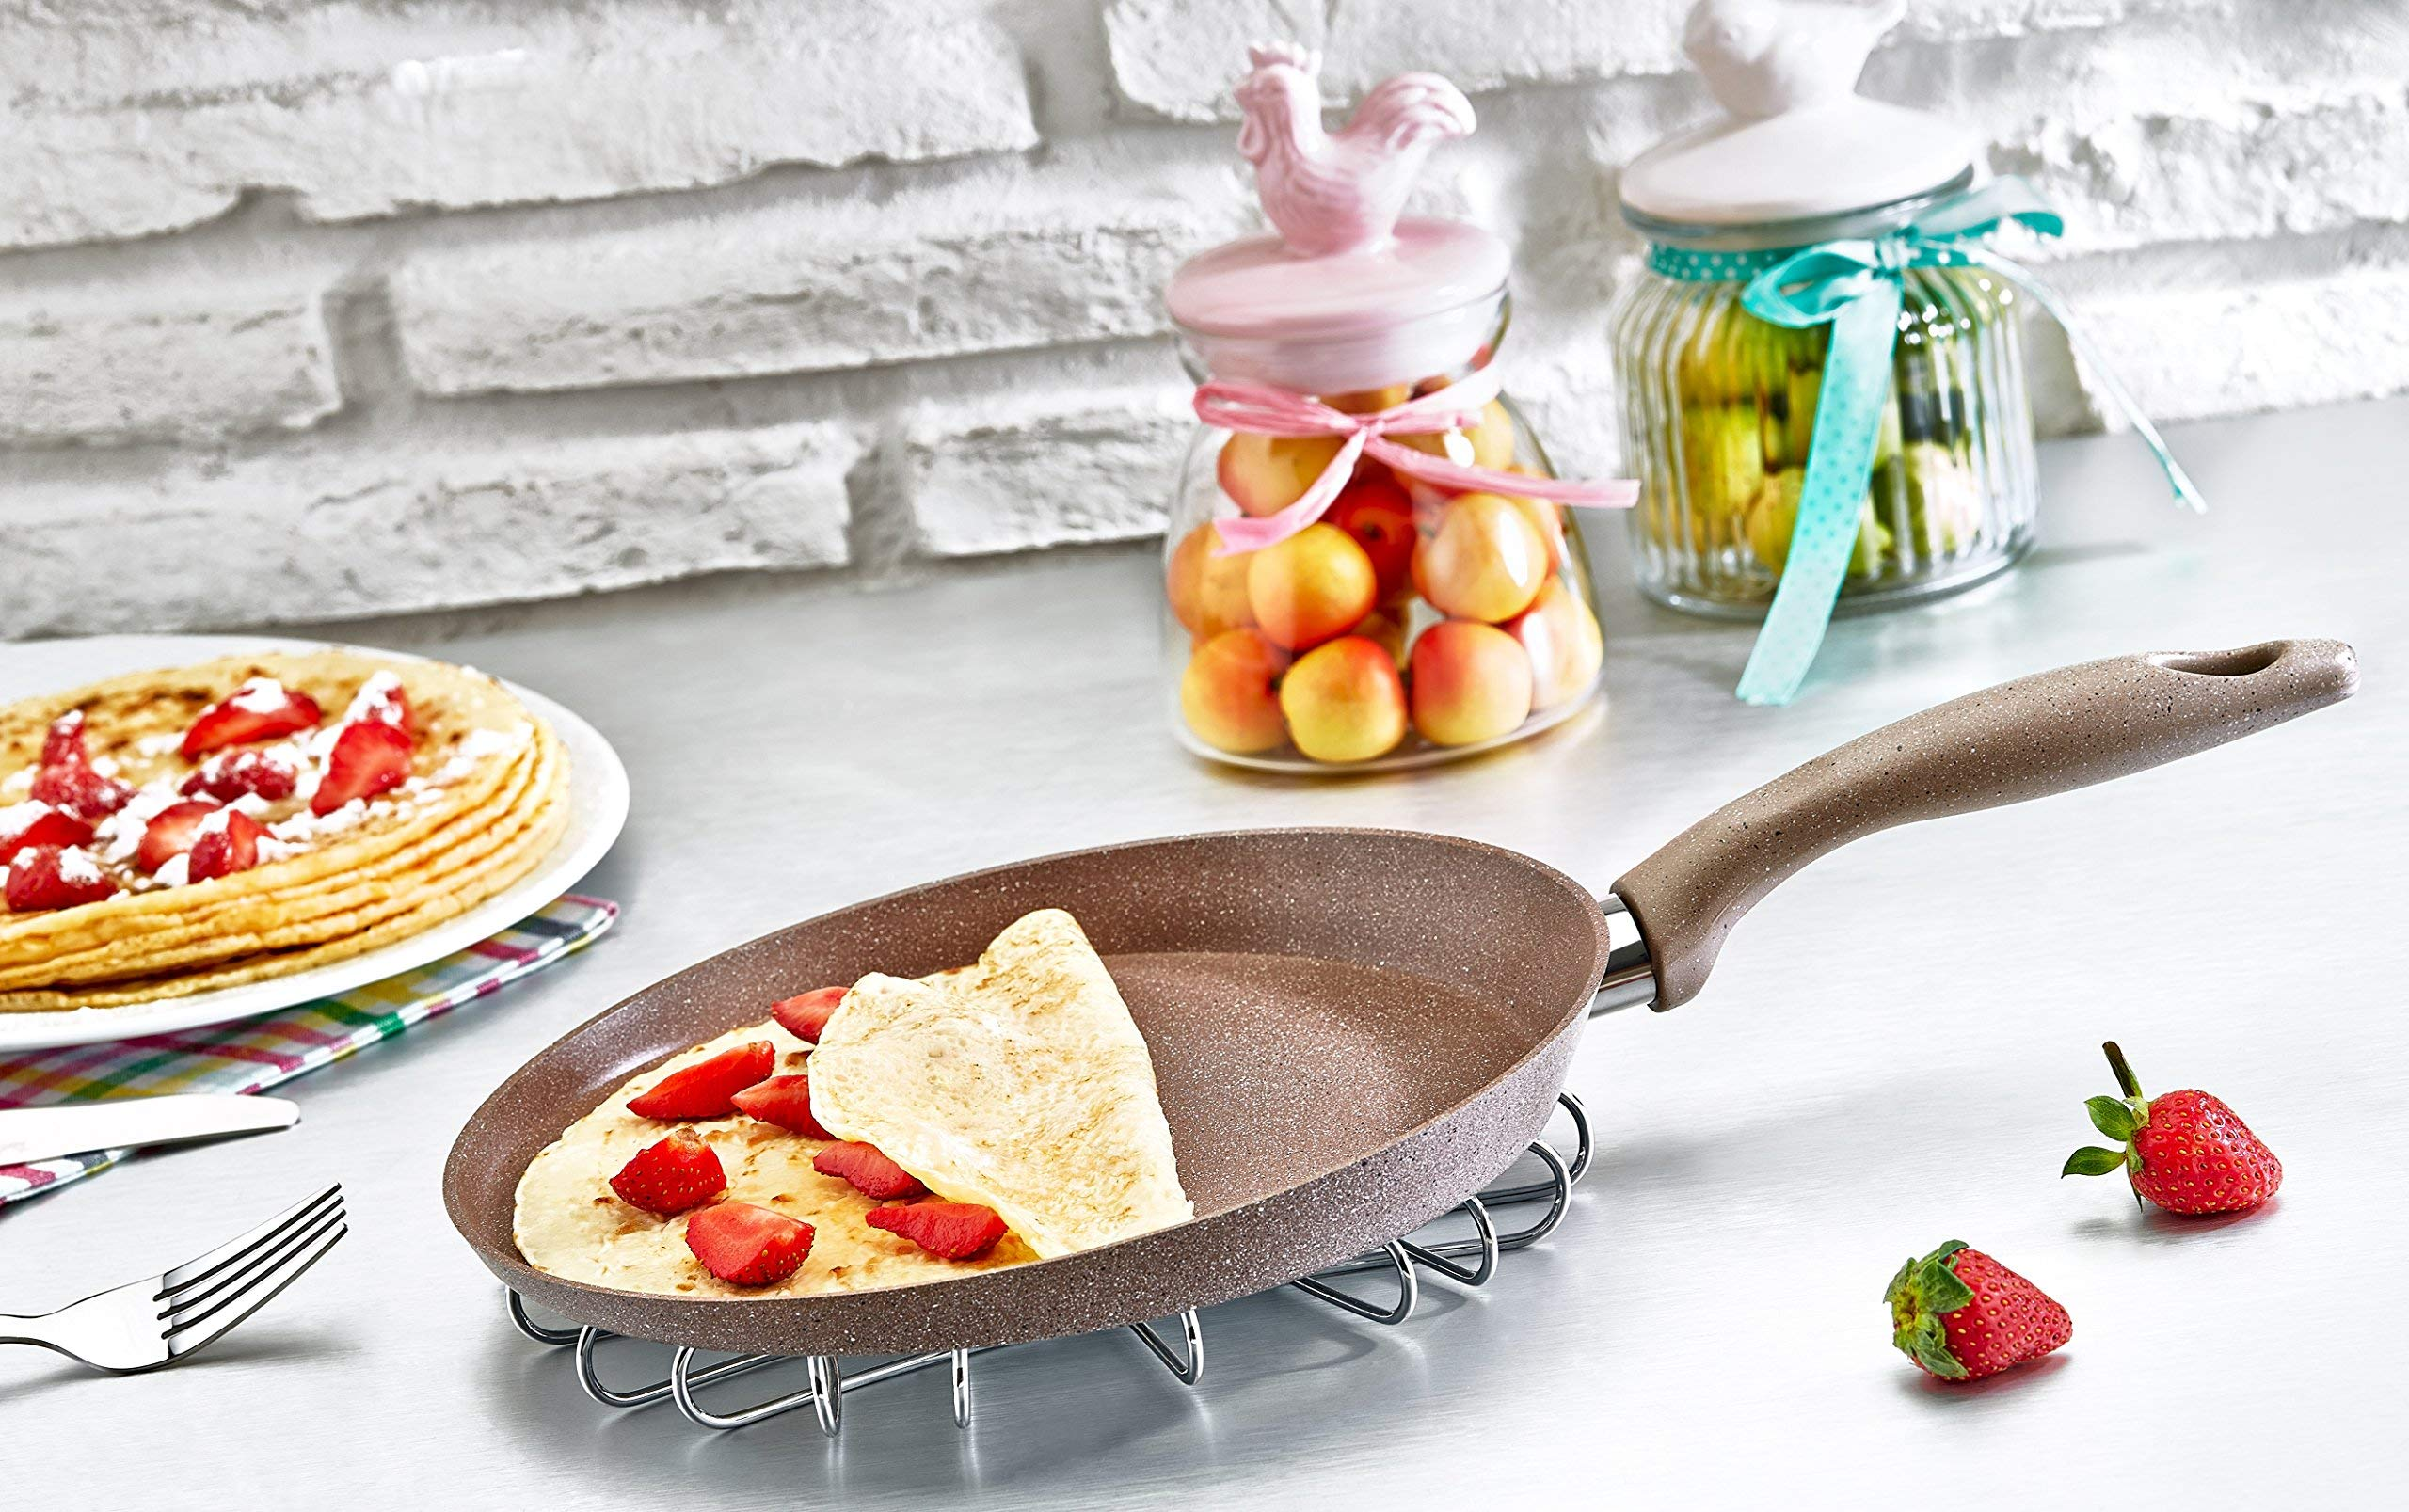 Granite Crepe Pan Non-Stick Scratch-Resistant Forged Aluminum w/ QuanTanium Coating | Even Heating Cooking Dishware (11-Inch) by SAFLON (Image #4)